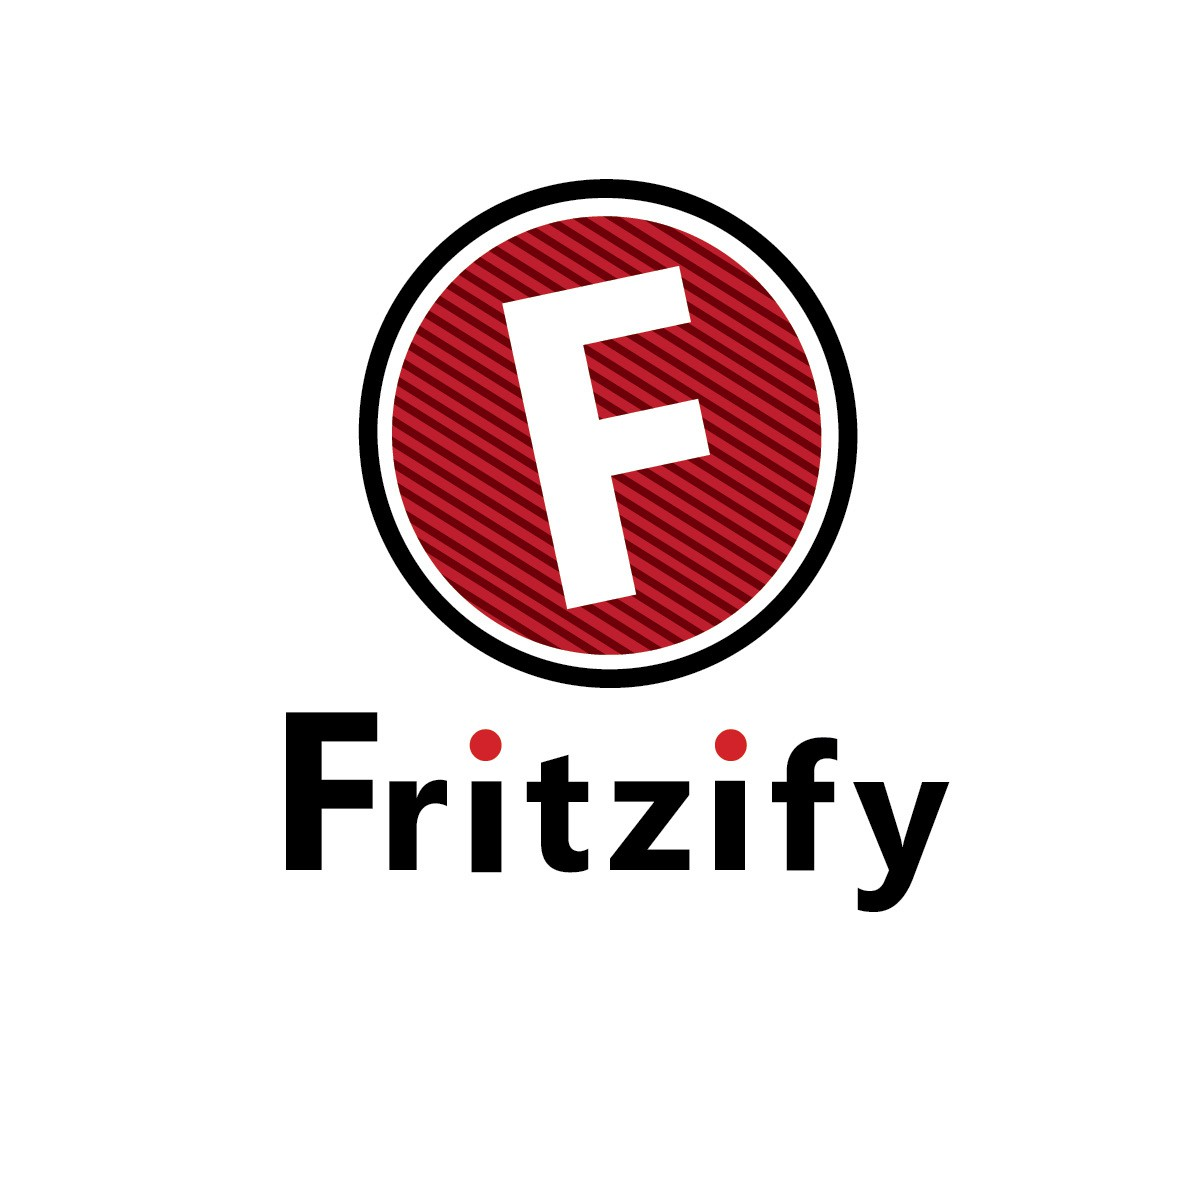 Help Fritzify with a new logo